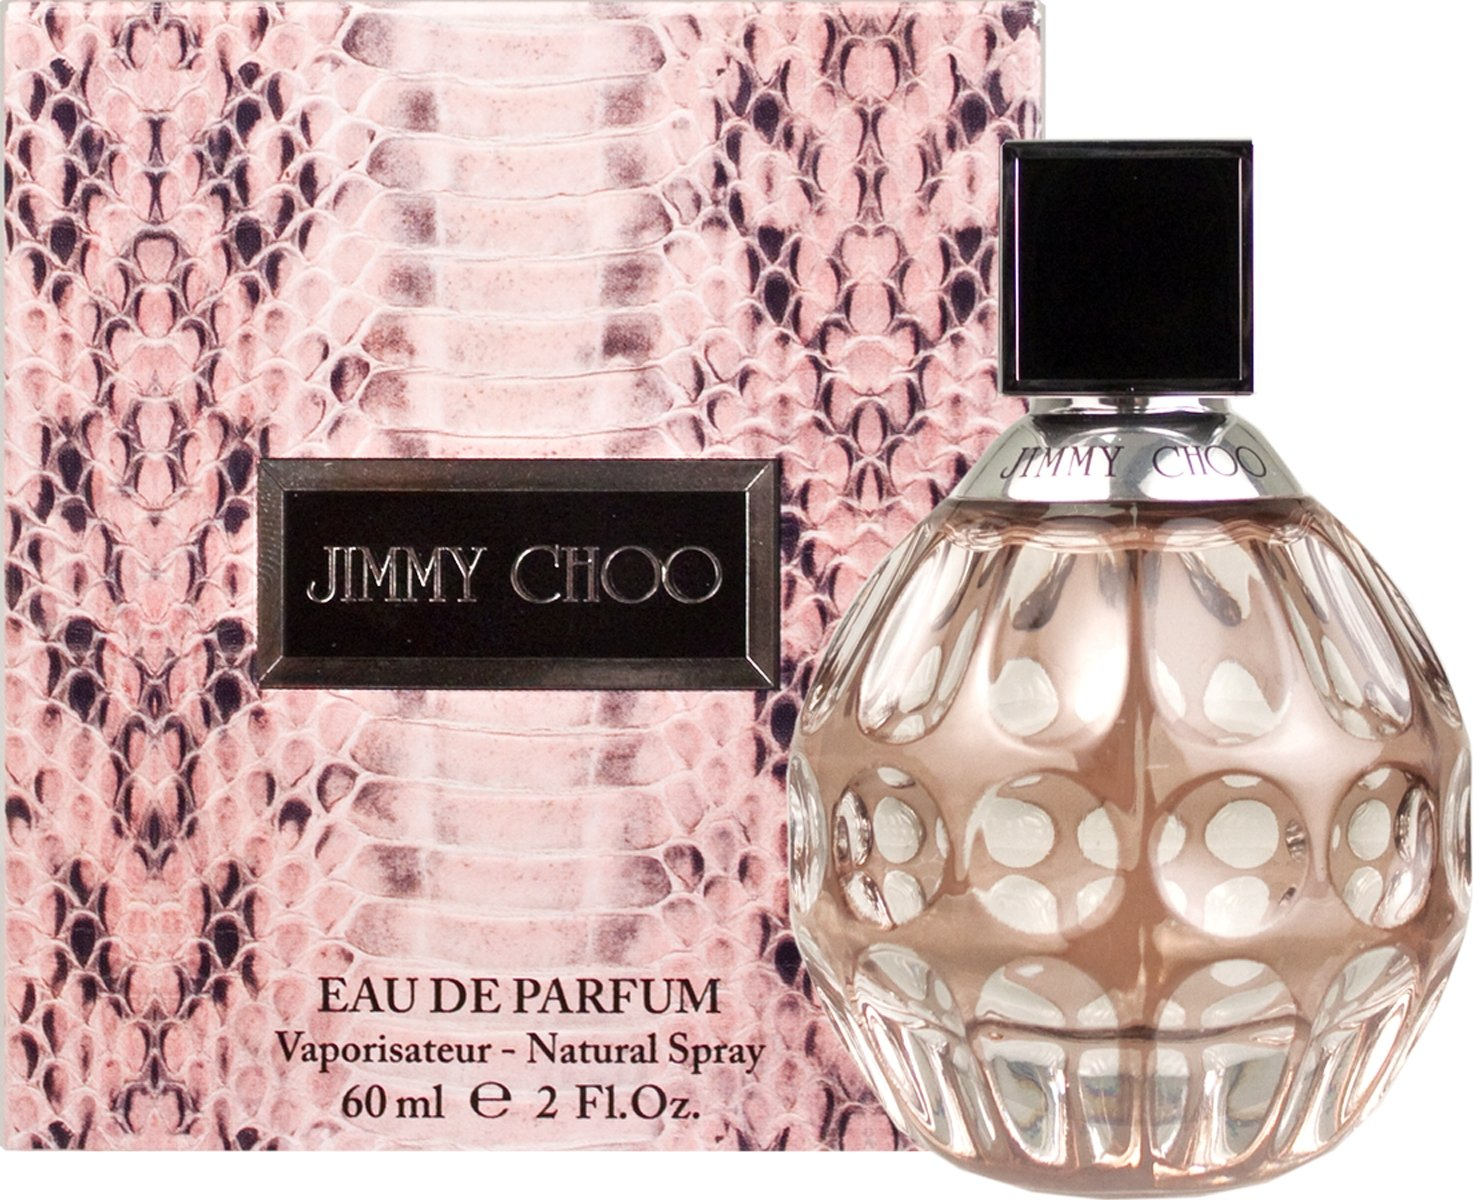 12+ active Jimmy Choo coupons, promo codes & deals for Nov. Most popular: Free Shipping Sitewide.